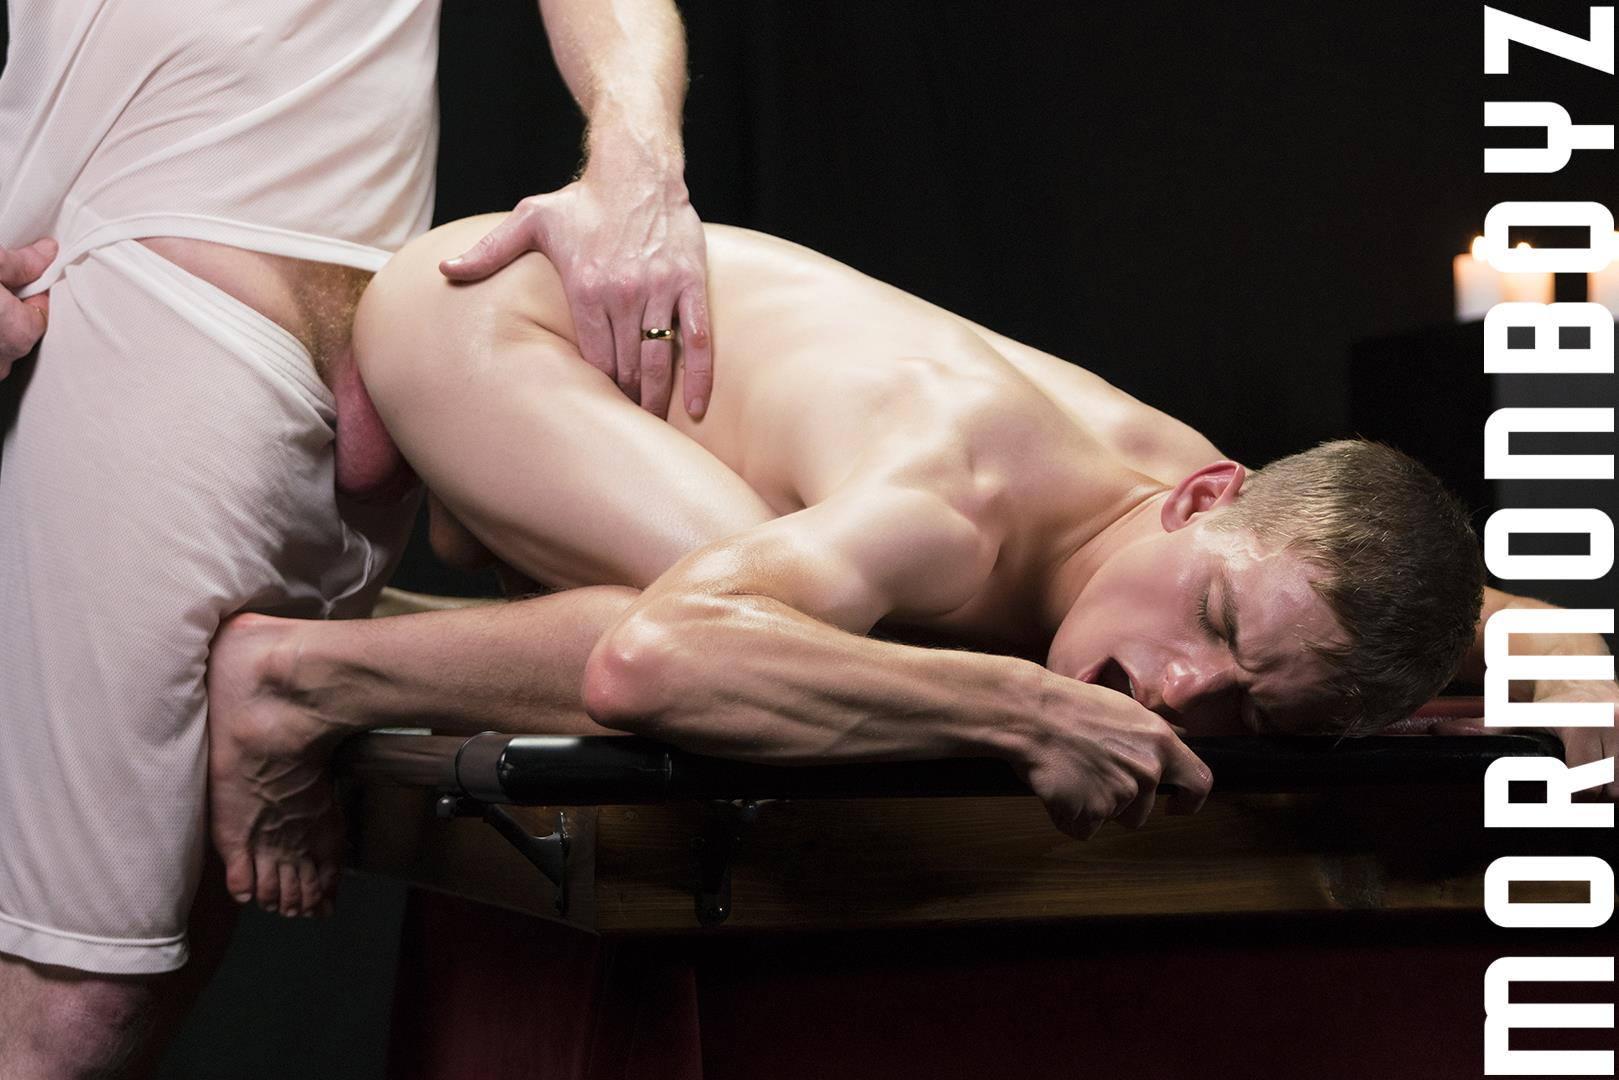 Mormon-Boyz-Older-Big-Dick-Daddy-Barebacking-Younger-Twink-Gay-Sex-Video-23 Mormon Missionary Twink Takes A Thick Daddy Cock Up The Ass Raw